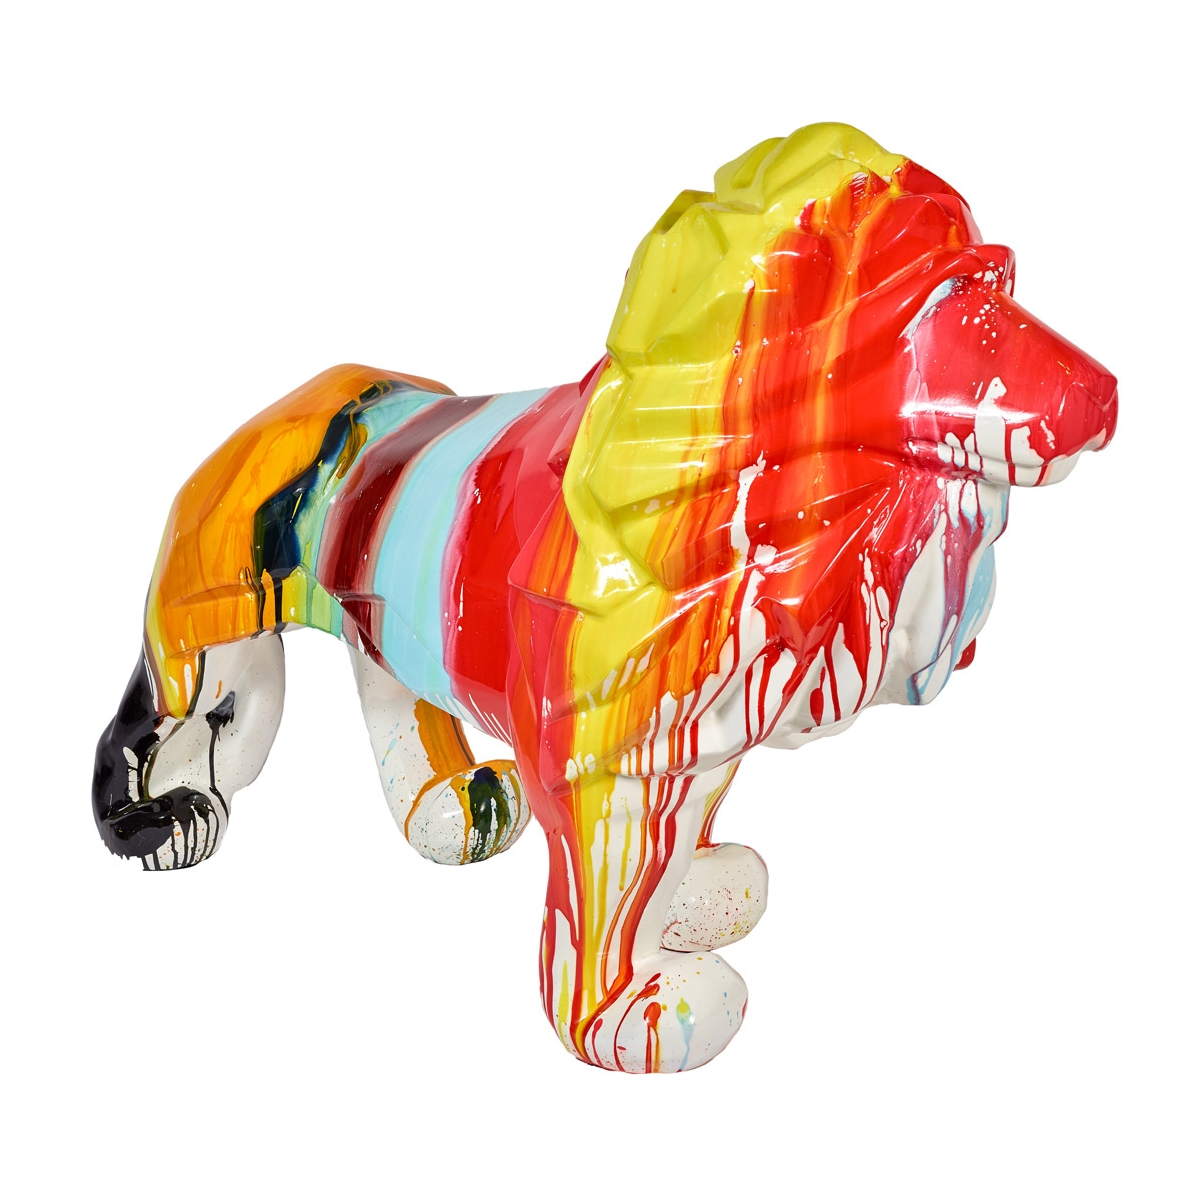 Statue lion design zendart design s lection zendart design for Interieur deco design